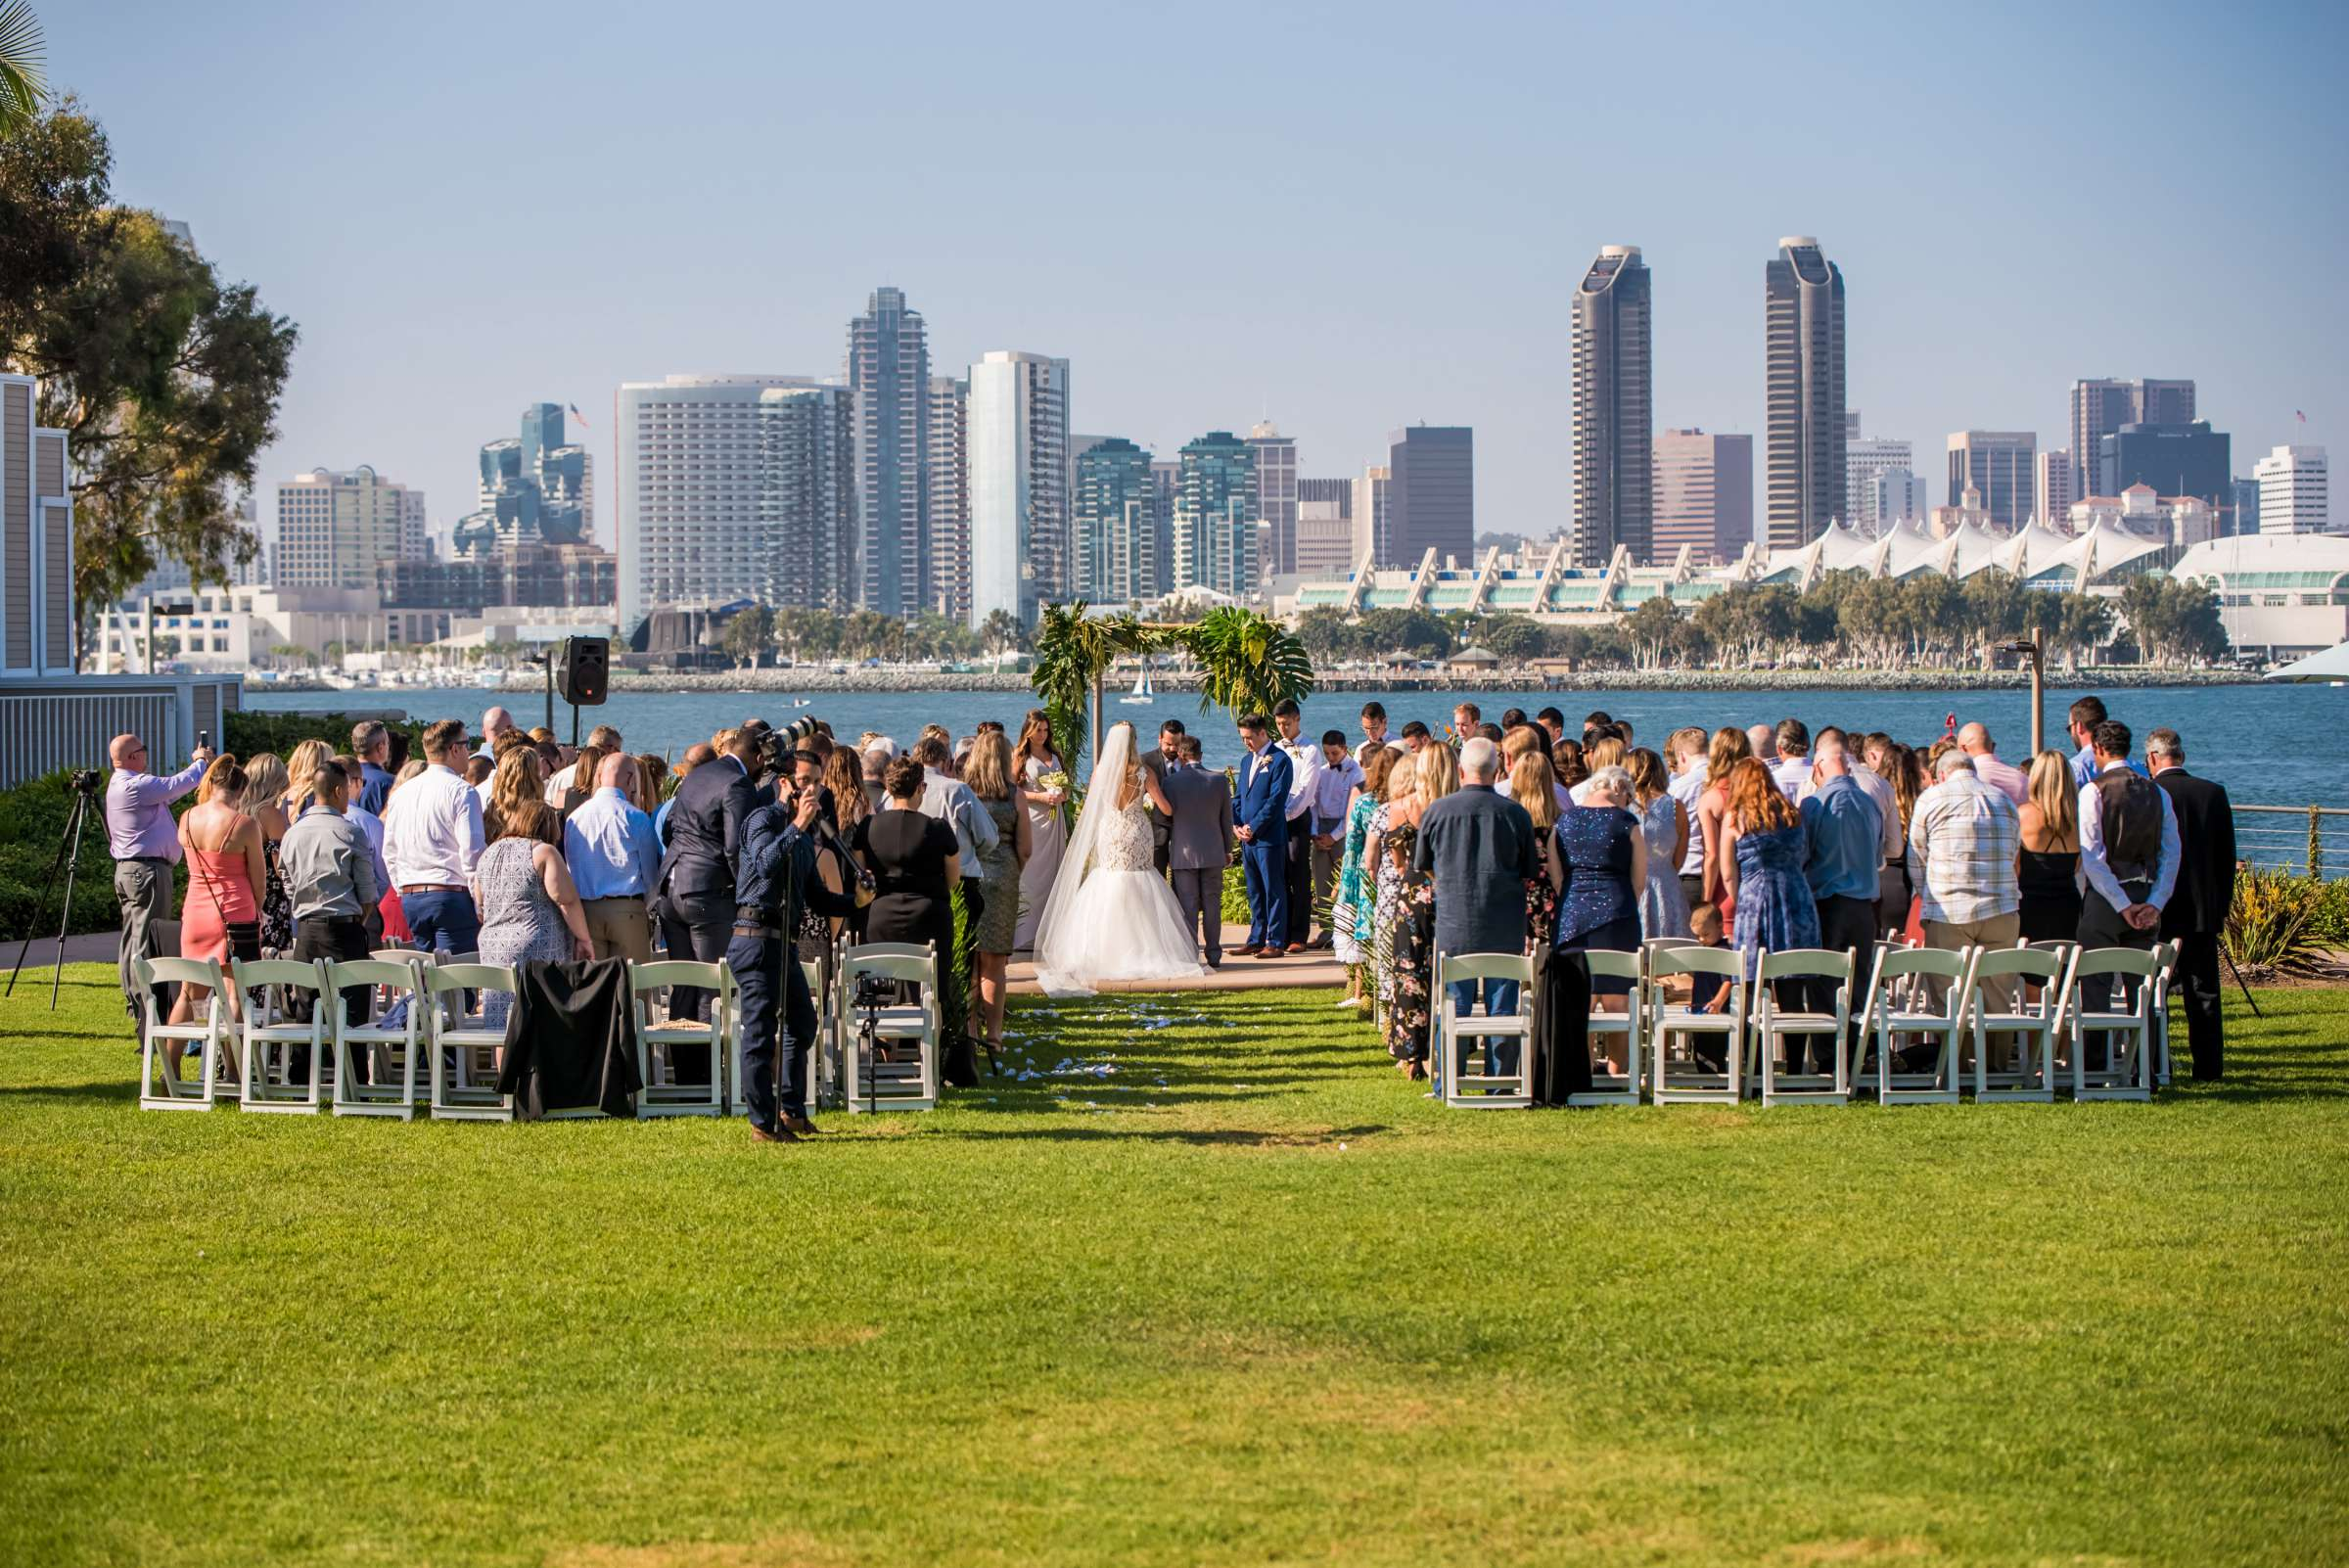 Coronado Island Marriott Resort & Spa Wedding coordinated by Bluestocking Weddings & Events, Ashleigh and Christopher Wedding Photo #57 by True Photography